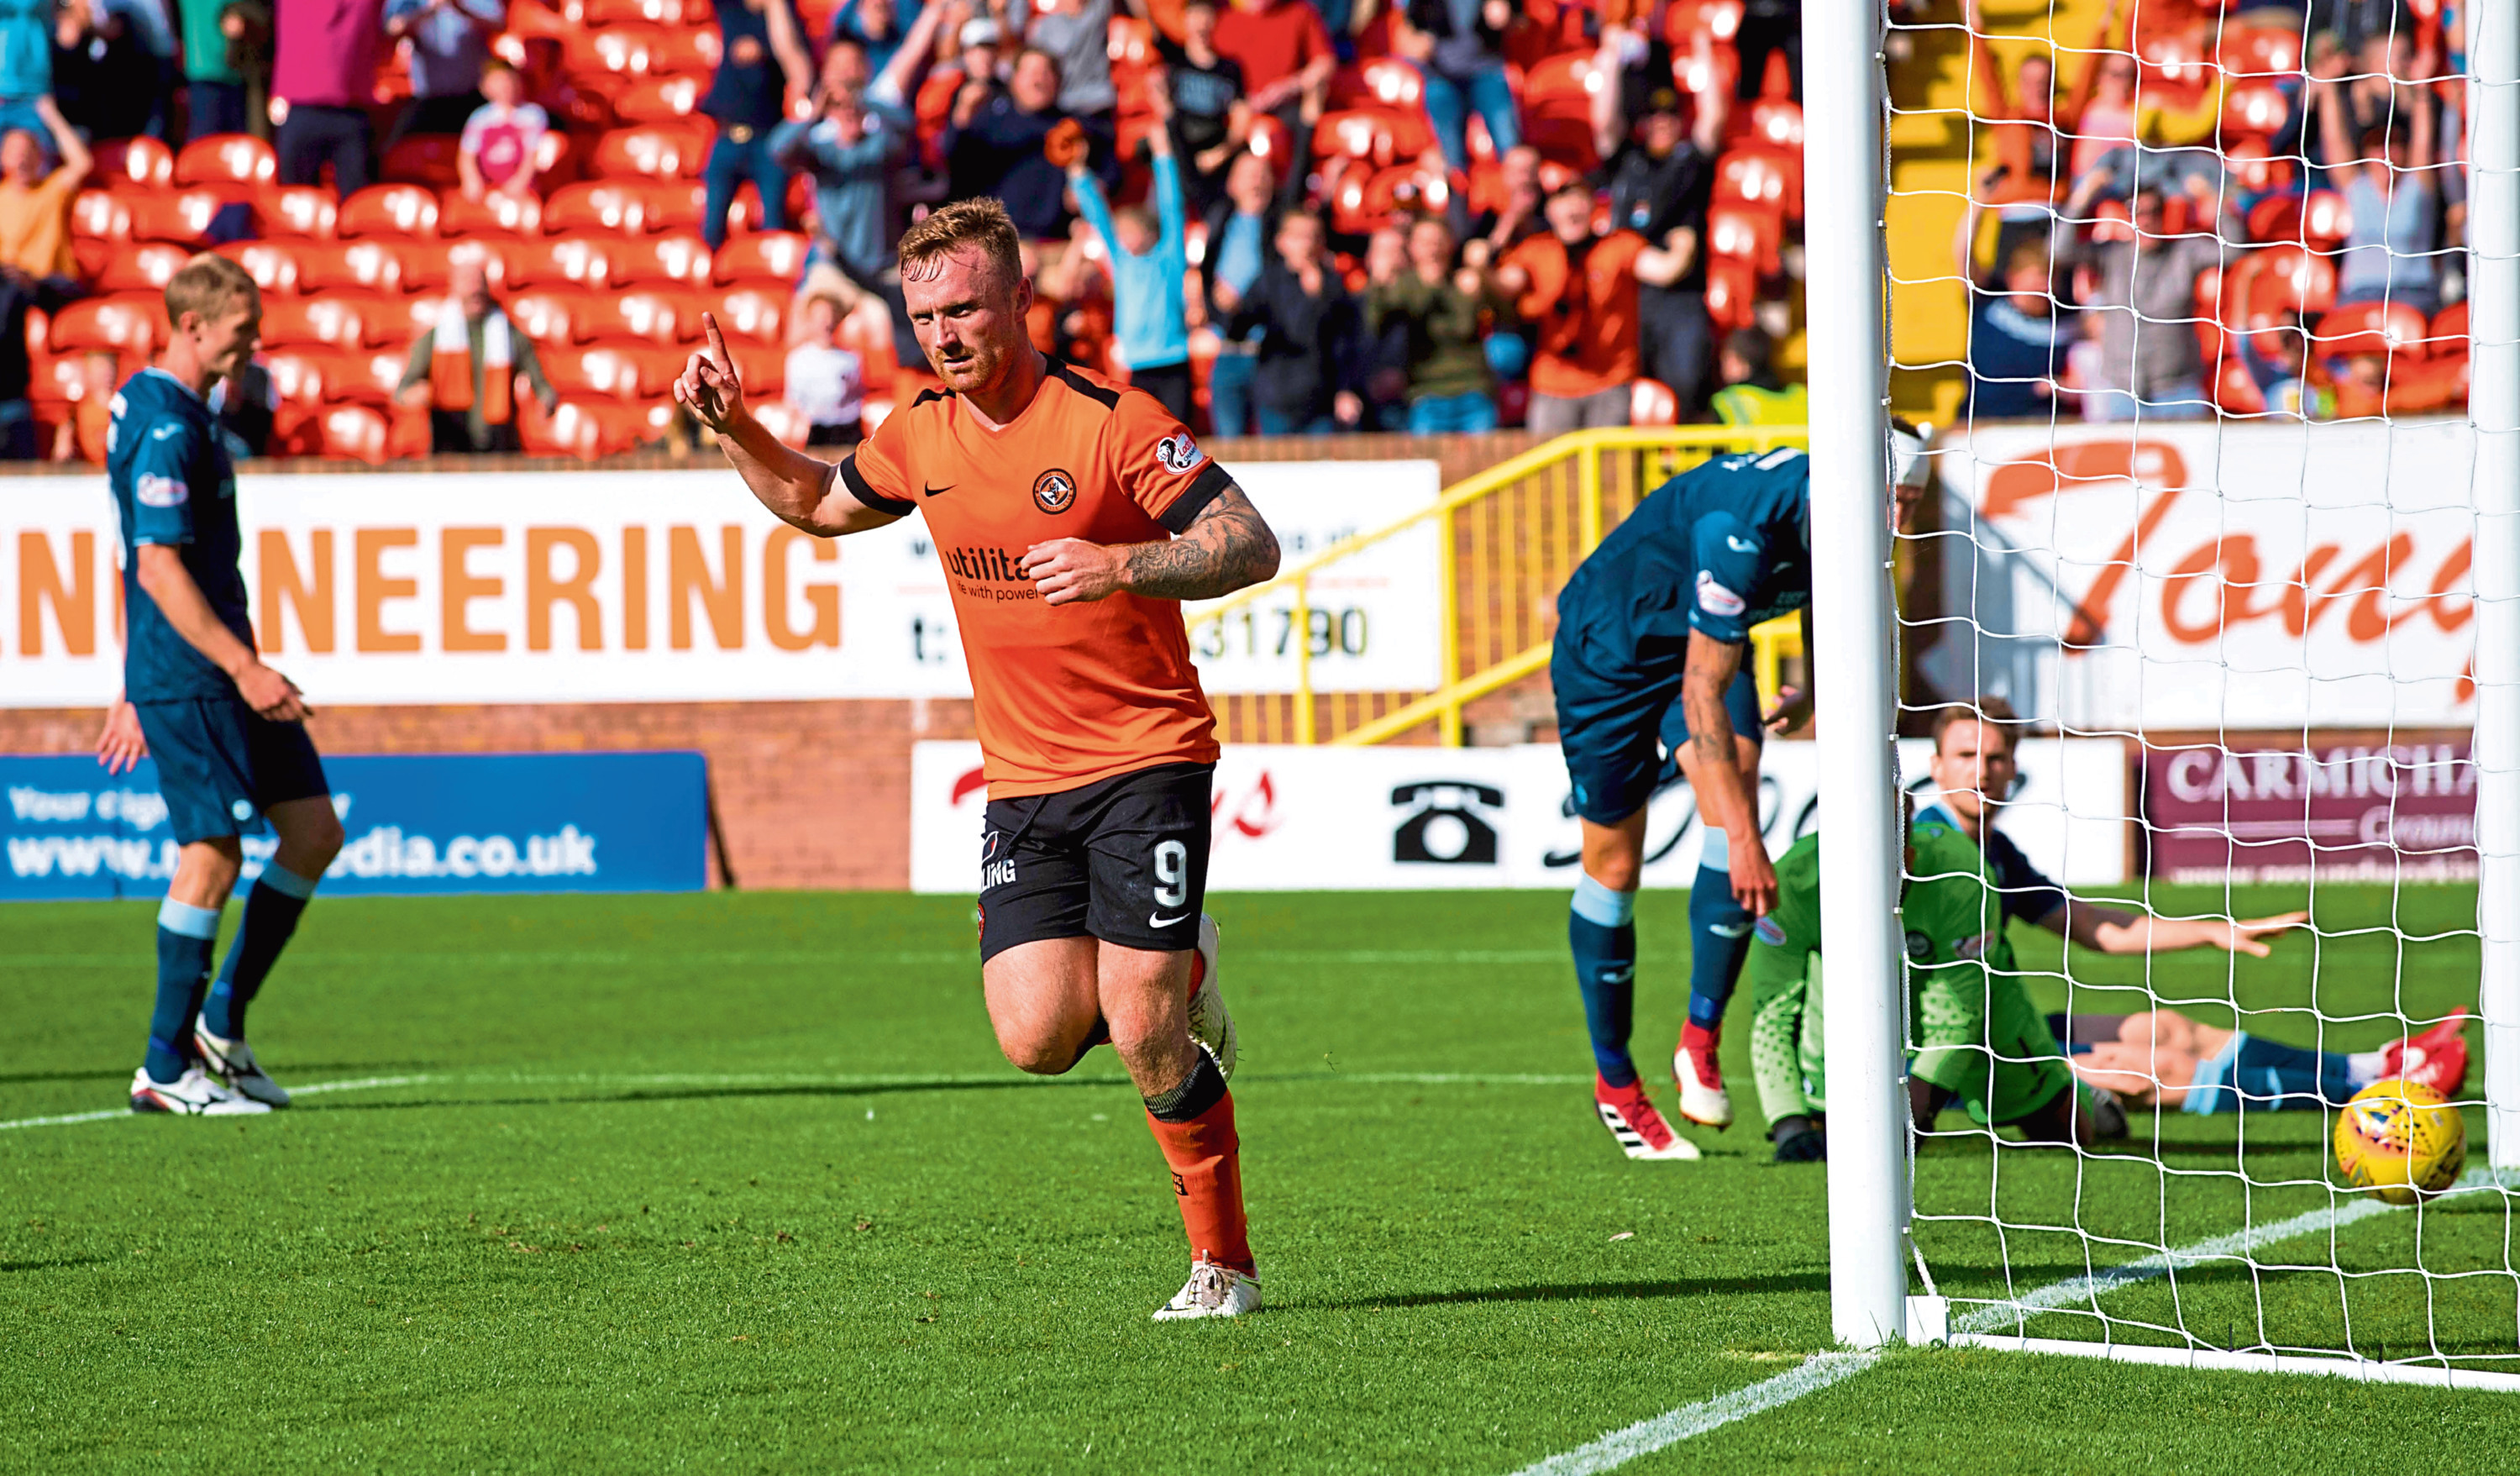 Craig Curran scored Dundee United's third in a 3-1 win over Partick Thistle at Tannadice on Saturday in his return to the fold.